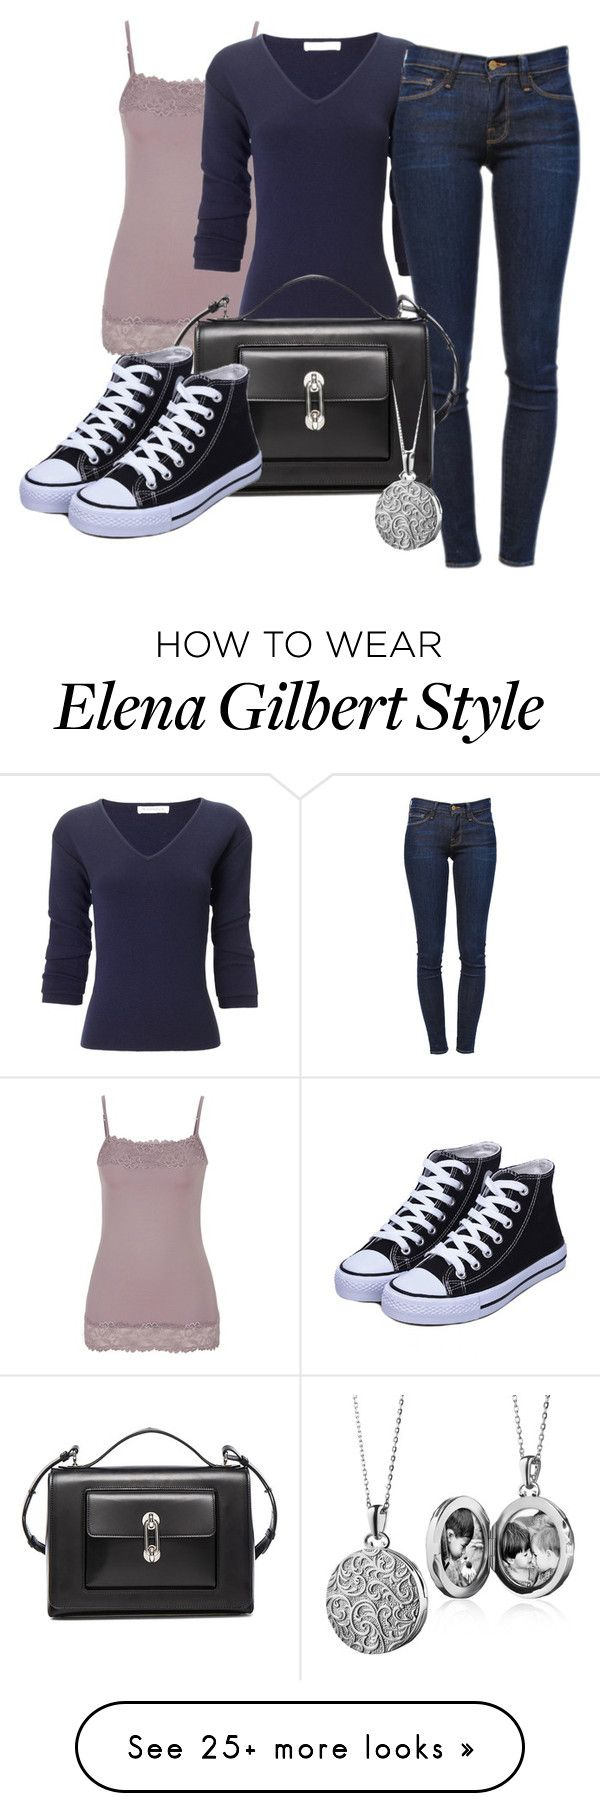 """""""Elena Gilbert (The Vampire Diaries)"""" by risacf on Polyvore featuring maurices, J.W. Anderson, Frame Denim, Balenciaga and Blue Nile"""